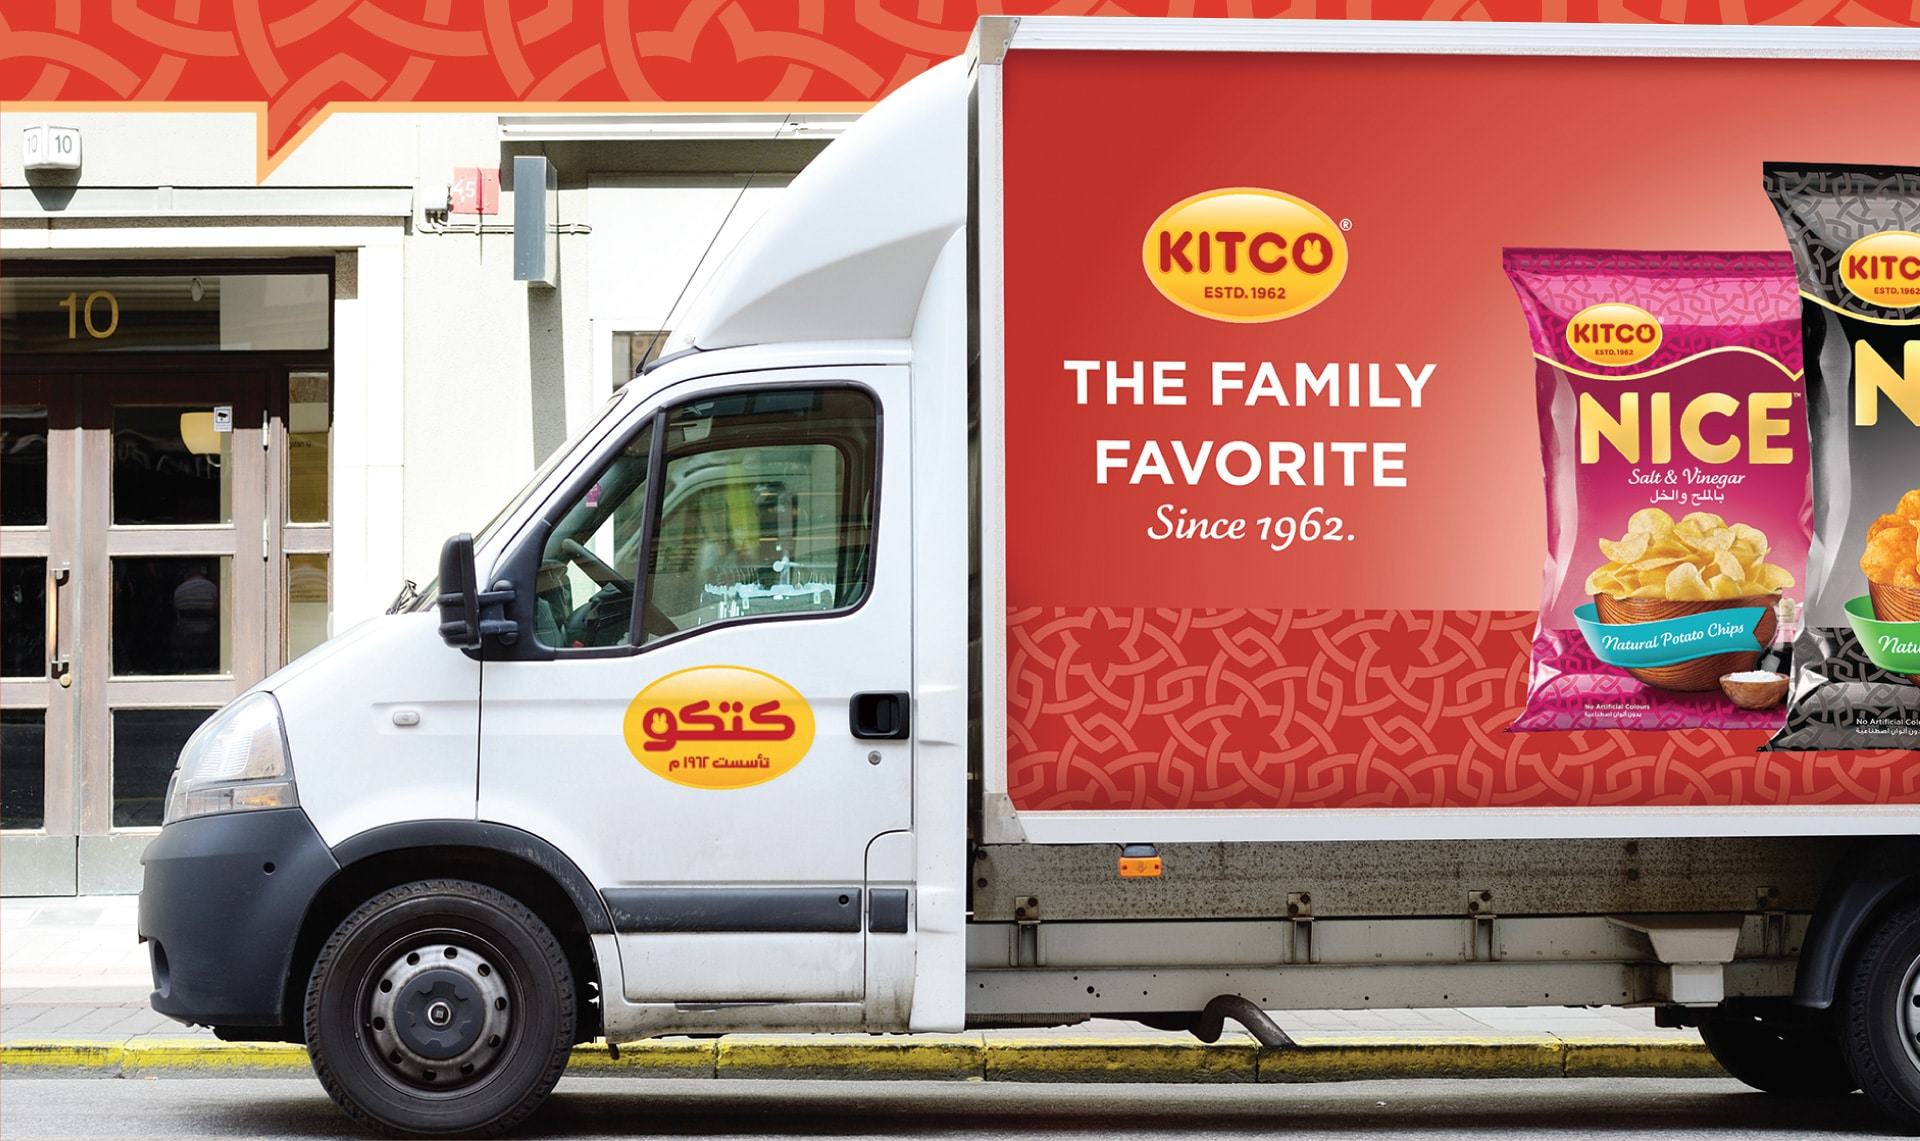 Kitco Nice - Brand Activation